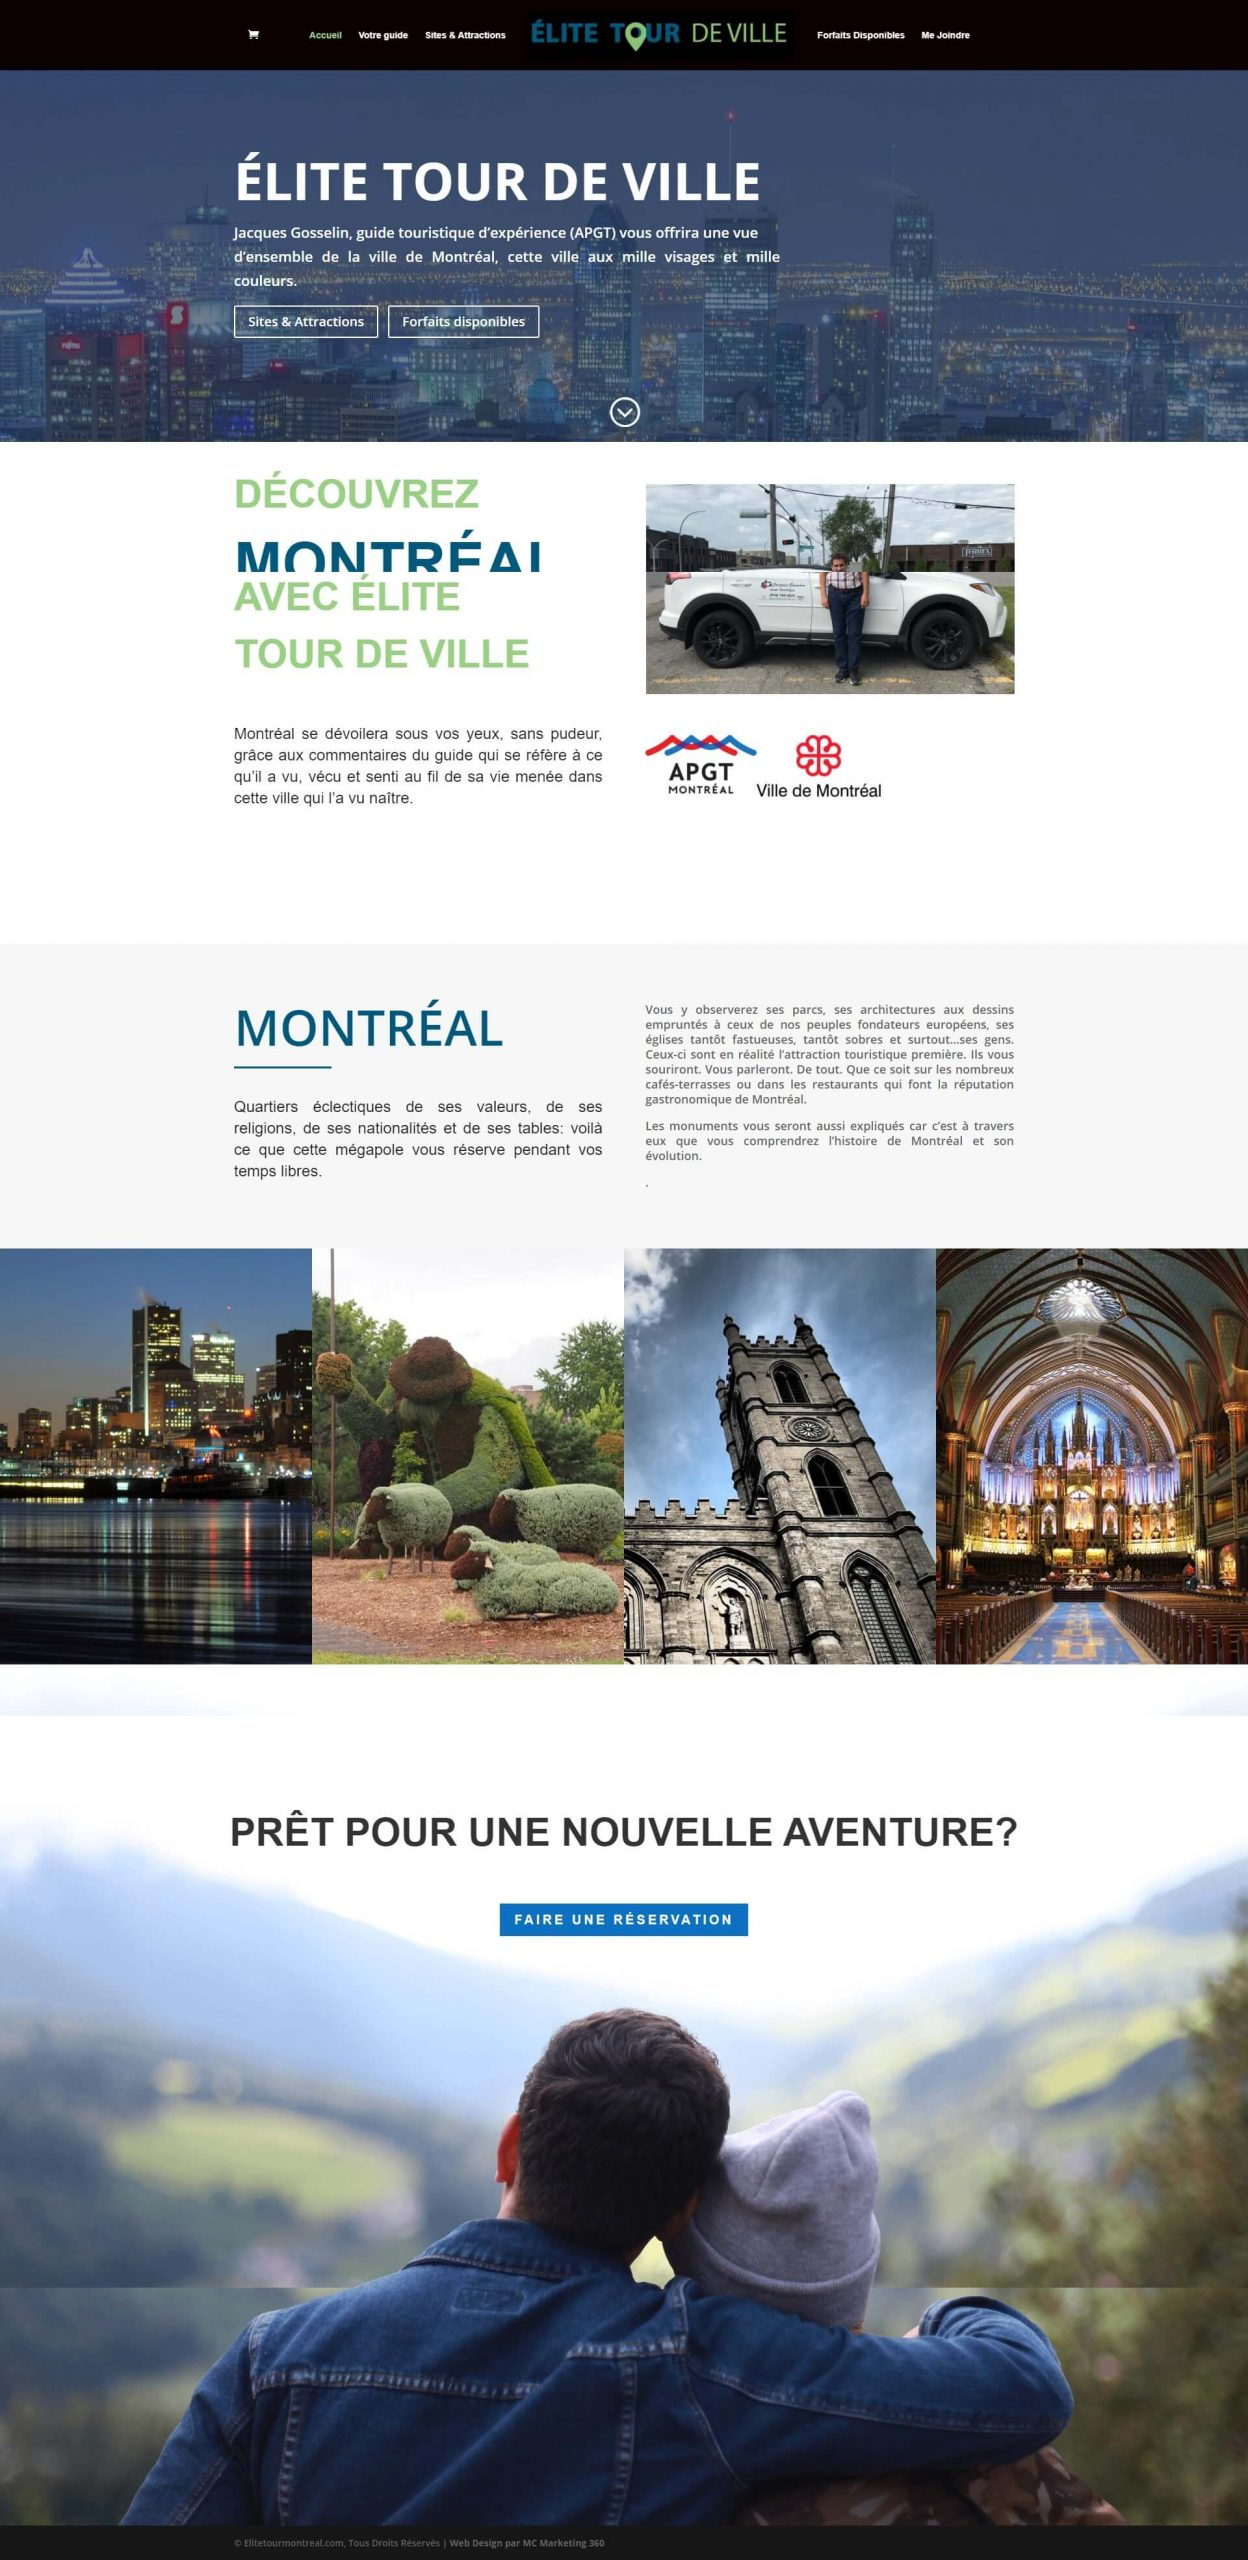 city tour guide website design in montreal scaled